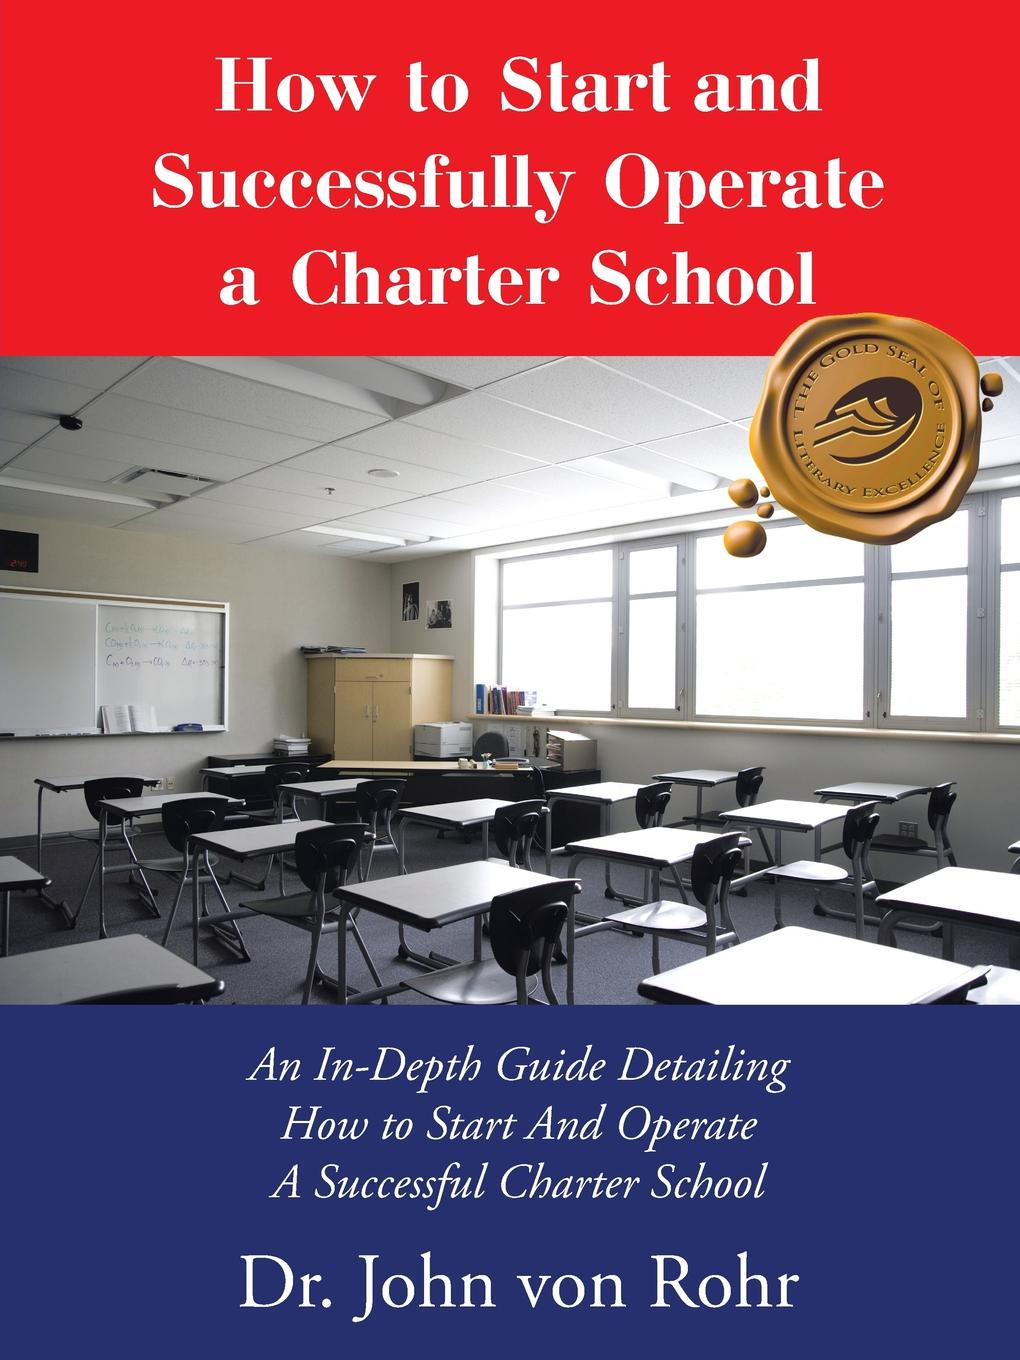 Dr. John von Rohr How to Start and Successfully Operate a Charter School. An In-Depth Guide Detailing And A Successful School